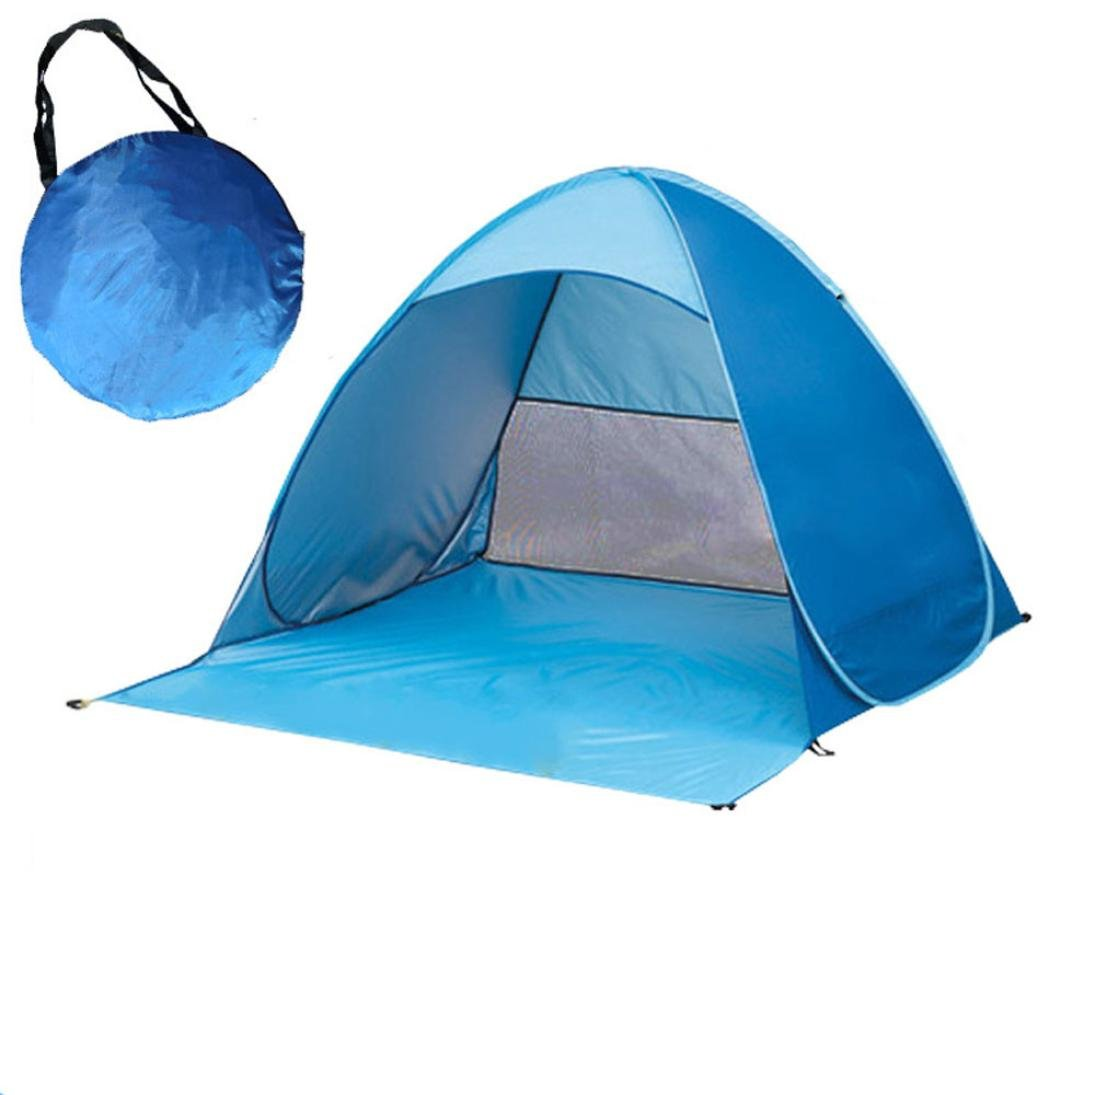 AutumnFall Camping Tent, 2018 New Style Fully Automatic Set-up Camping Beach Shade Tent Speed Open Outdoor UV Protection For Camping Hiking Picnic Fishing Beach (Blue)